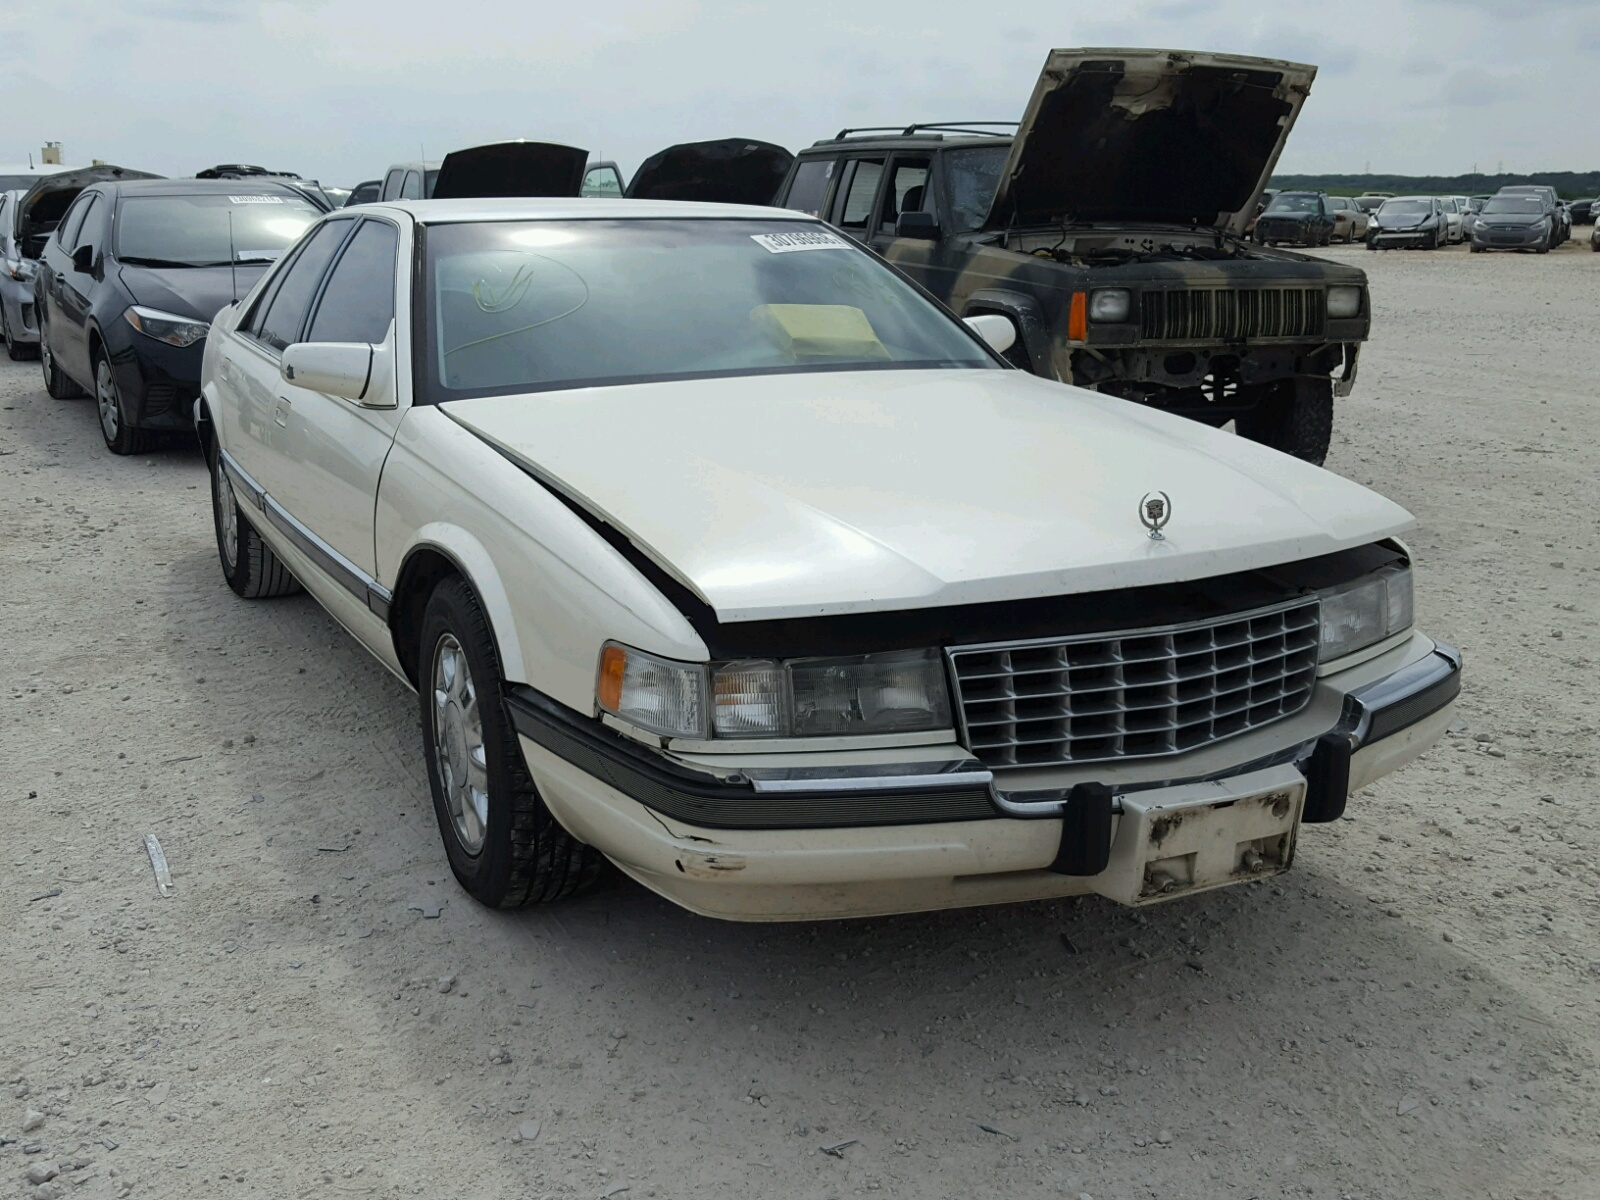 Copart Home Page >> 1G6KS52Y6VU835512 | 1997 WHITE CADILLAC SEVILLE SL on Sale in TX - AUSTIN | Lot 30796968